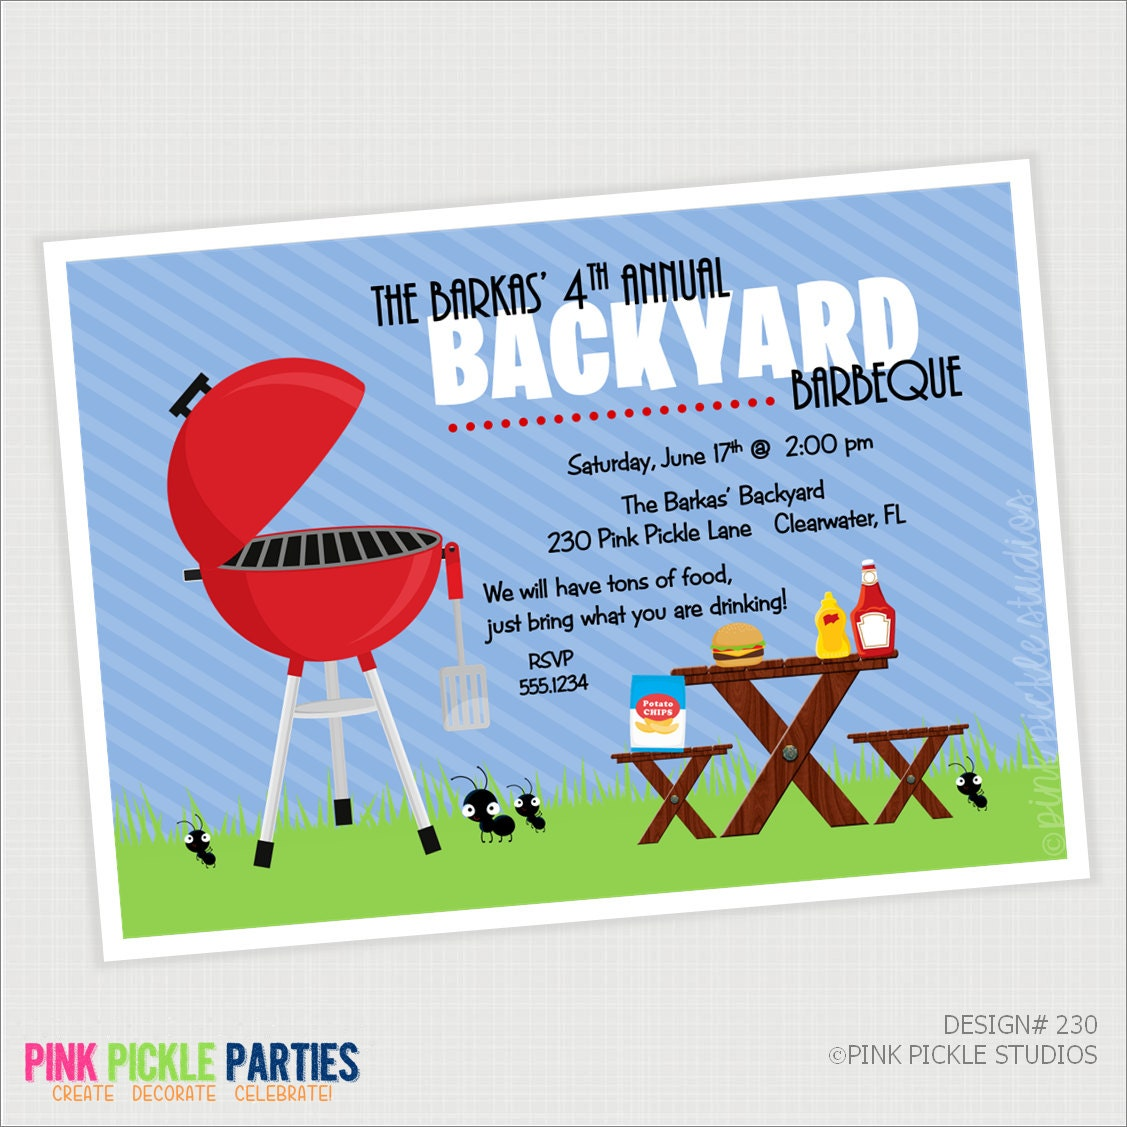 Invitation To Party Wording is amazing invitation sample